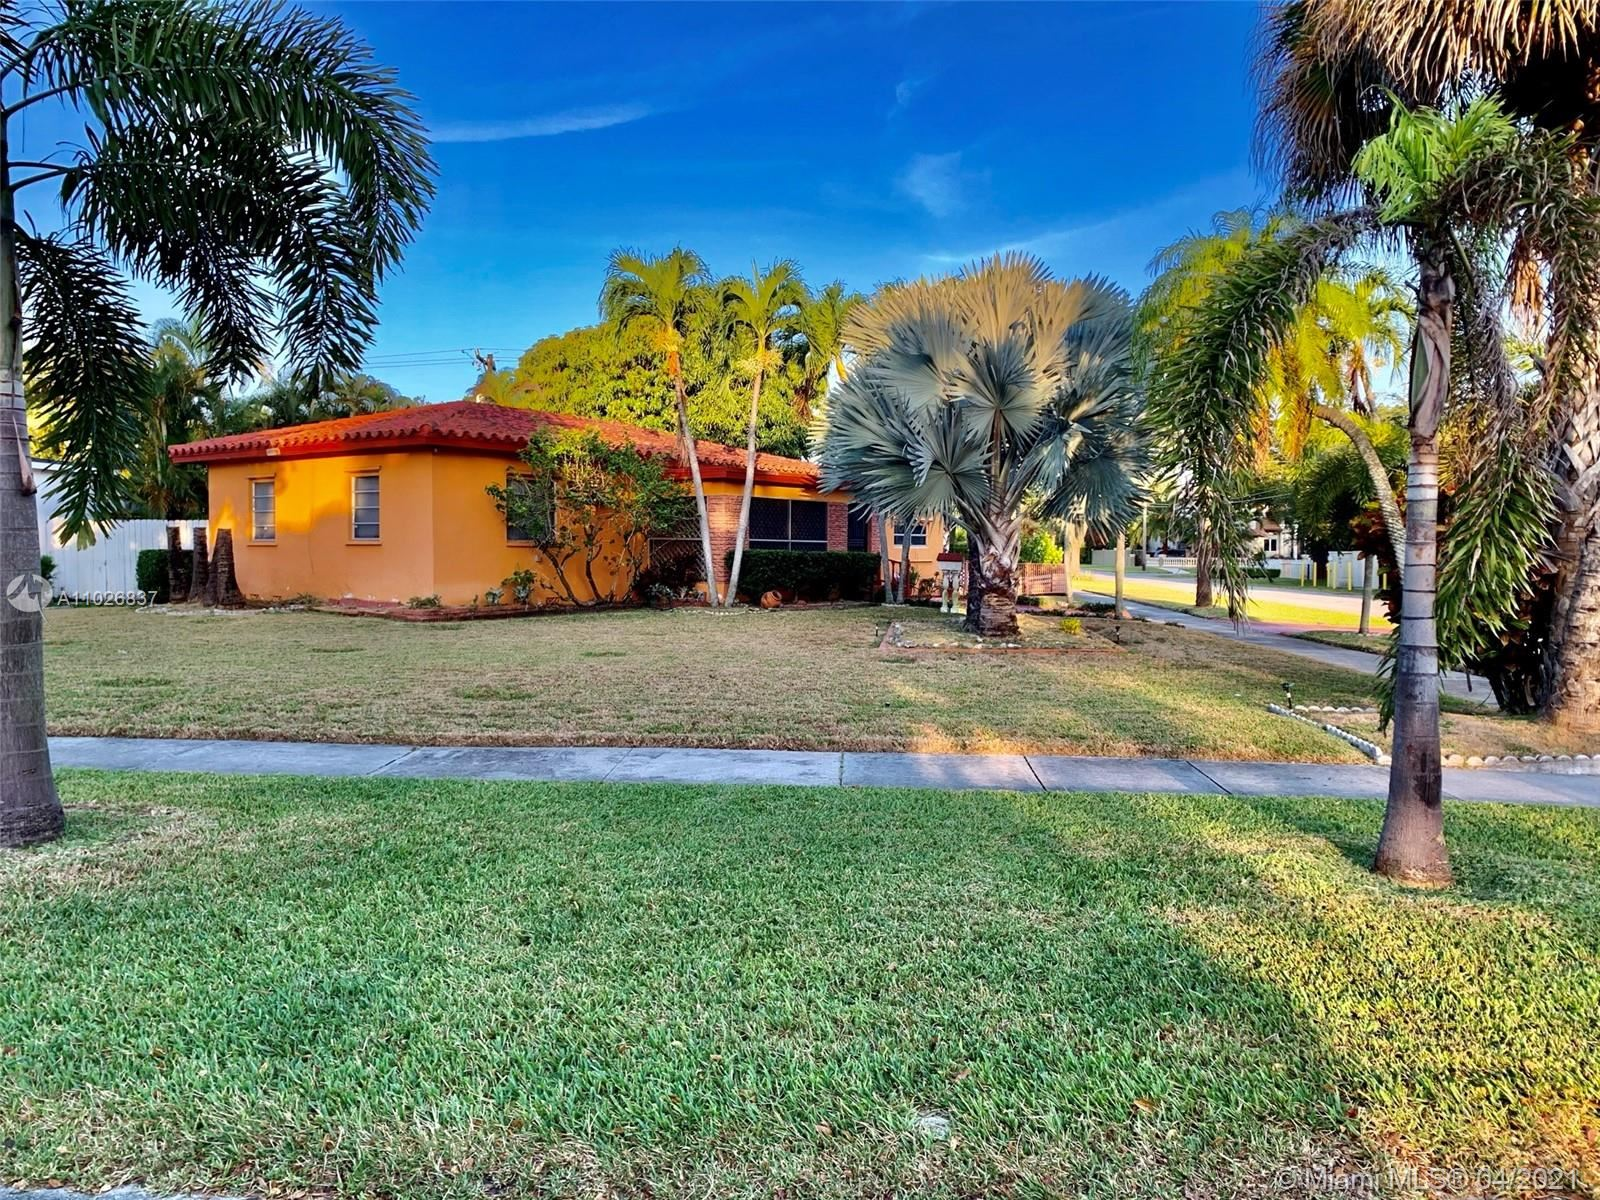 600 Forrest Dr, Miami Springs, FL 33166 - #: A11026837